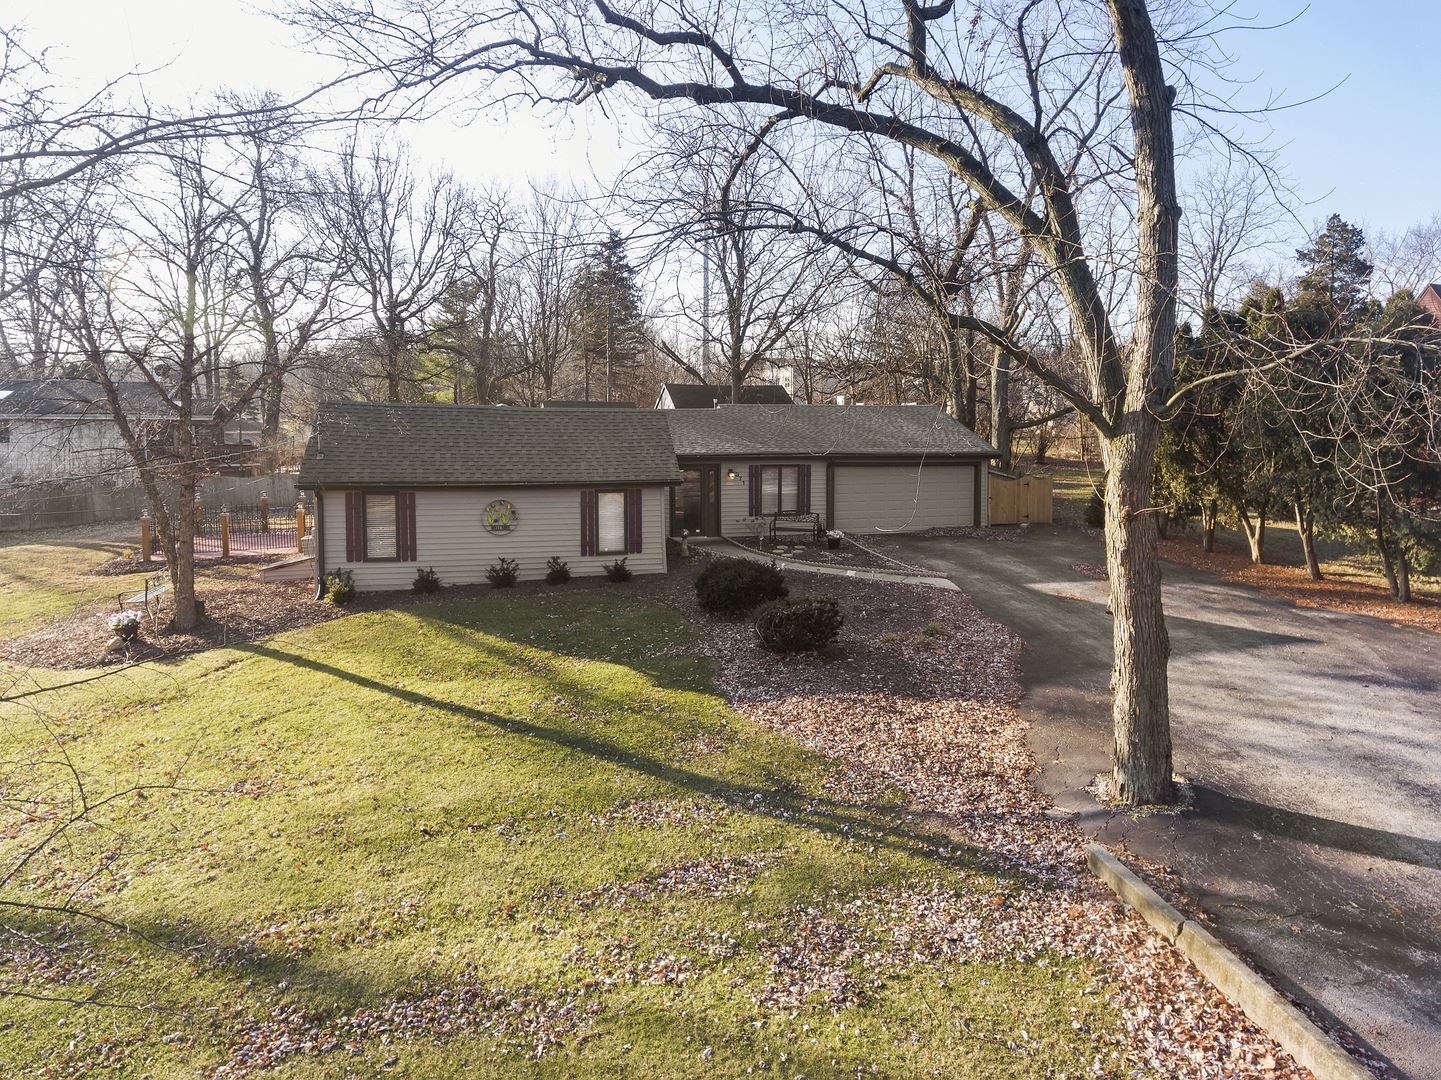 22W371 Emerson Avenue, Glen Ellyn, IL 60137 - #: 10613989